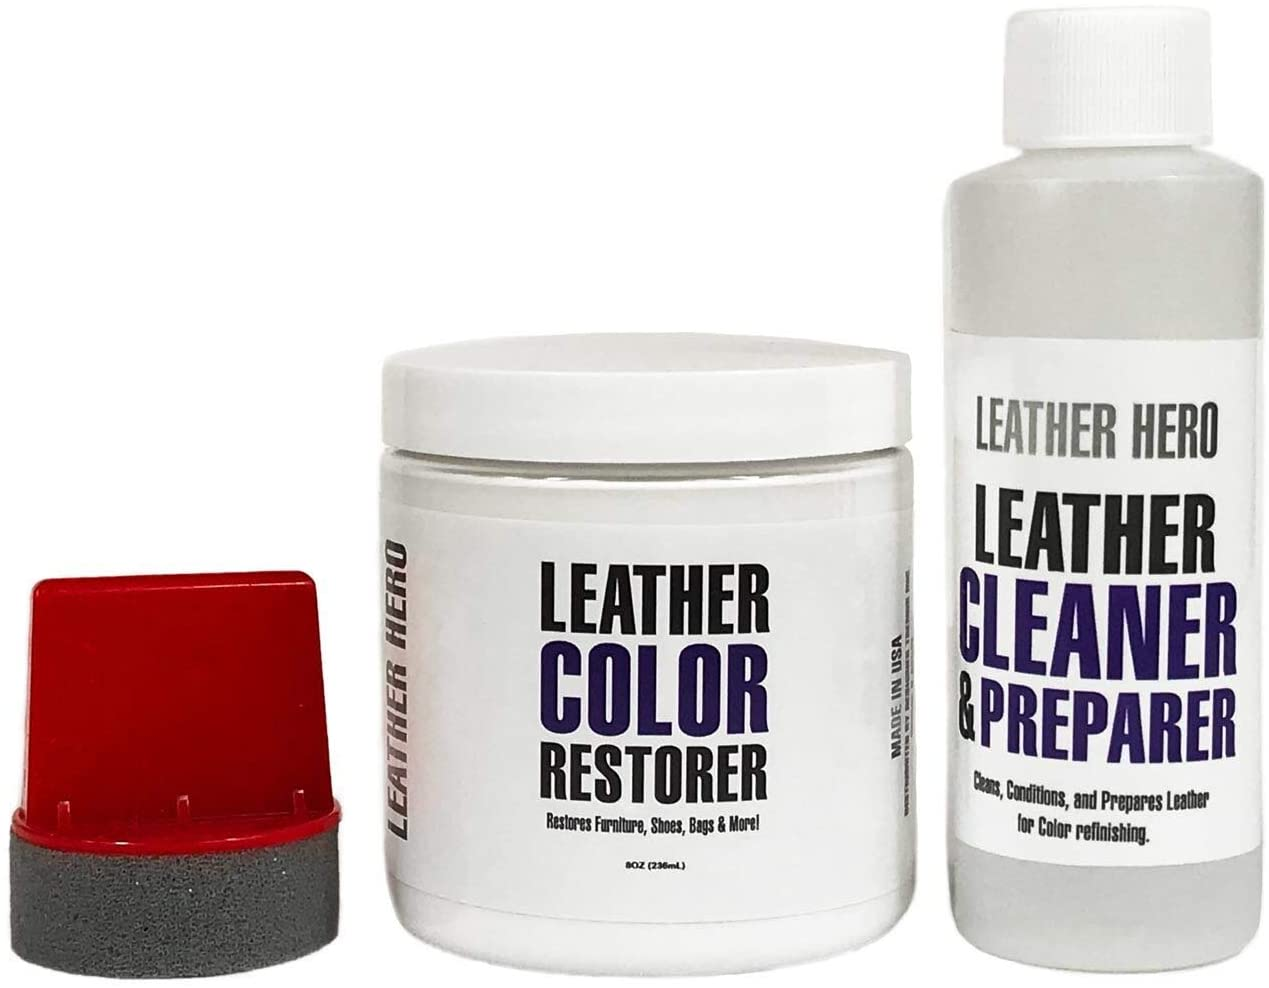 Leather Hero Leather Color Restorer Repair Kit- Refinish, Recolor, Renew Leather & Vinyl Sofa, Purse, Shoes, Auto Car Seats, Couch 8oz (Navy Blue)